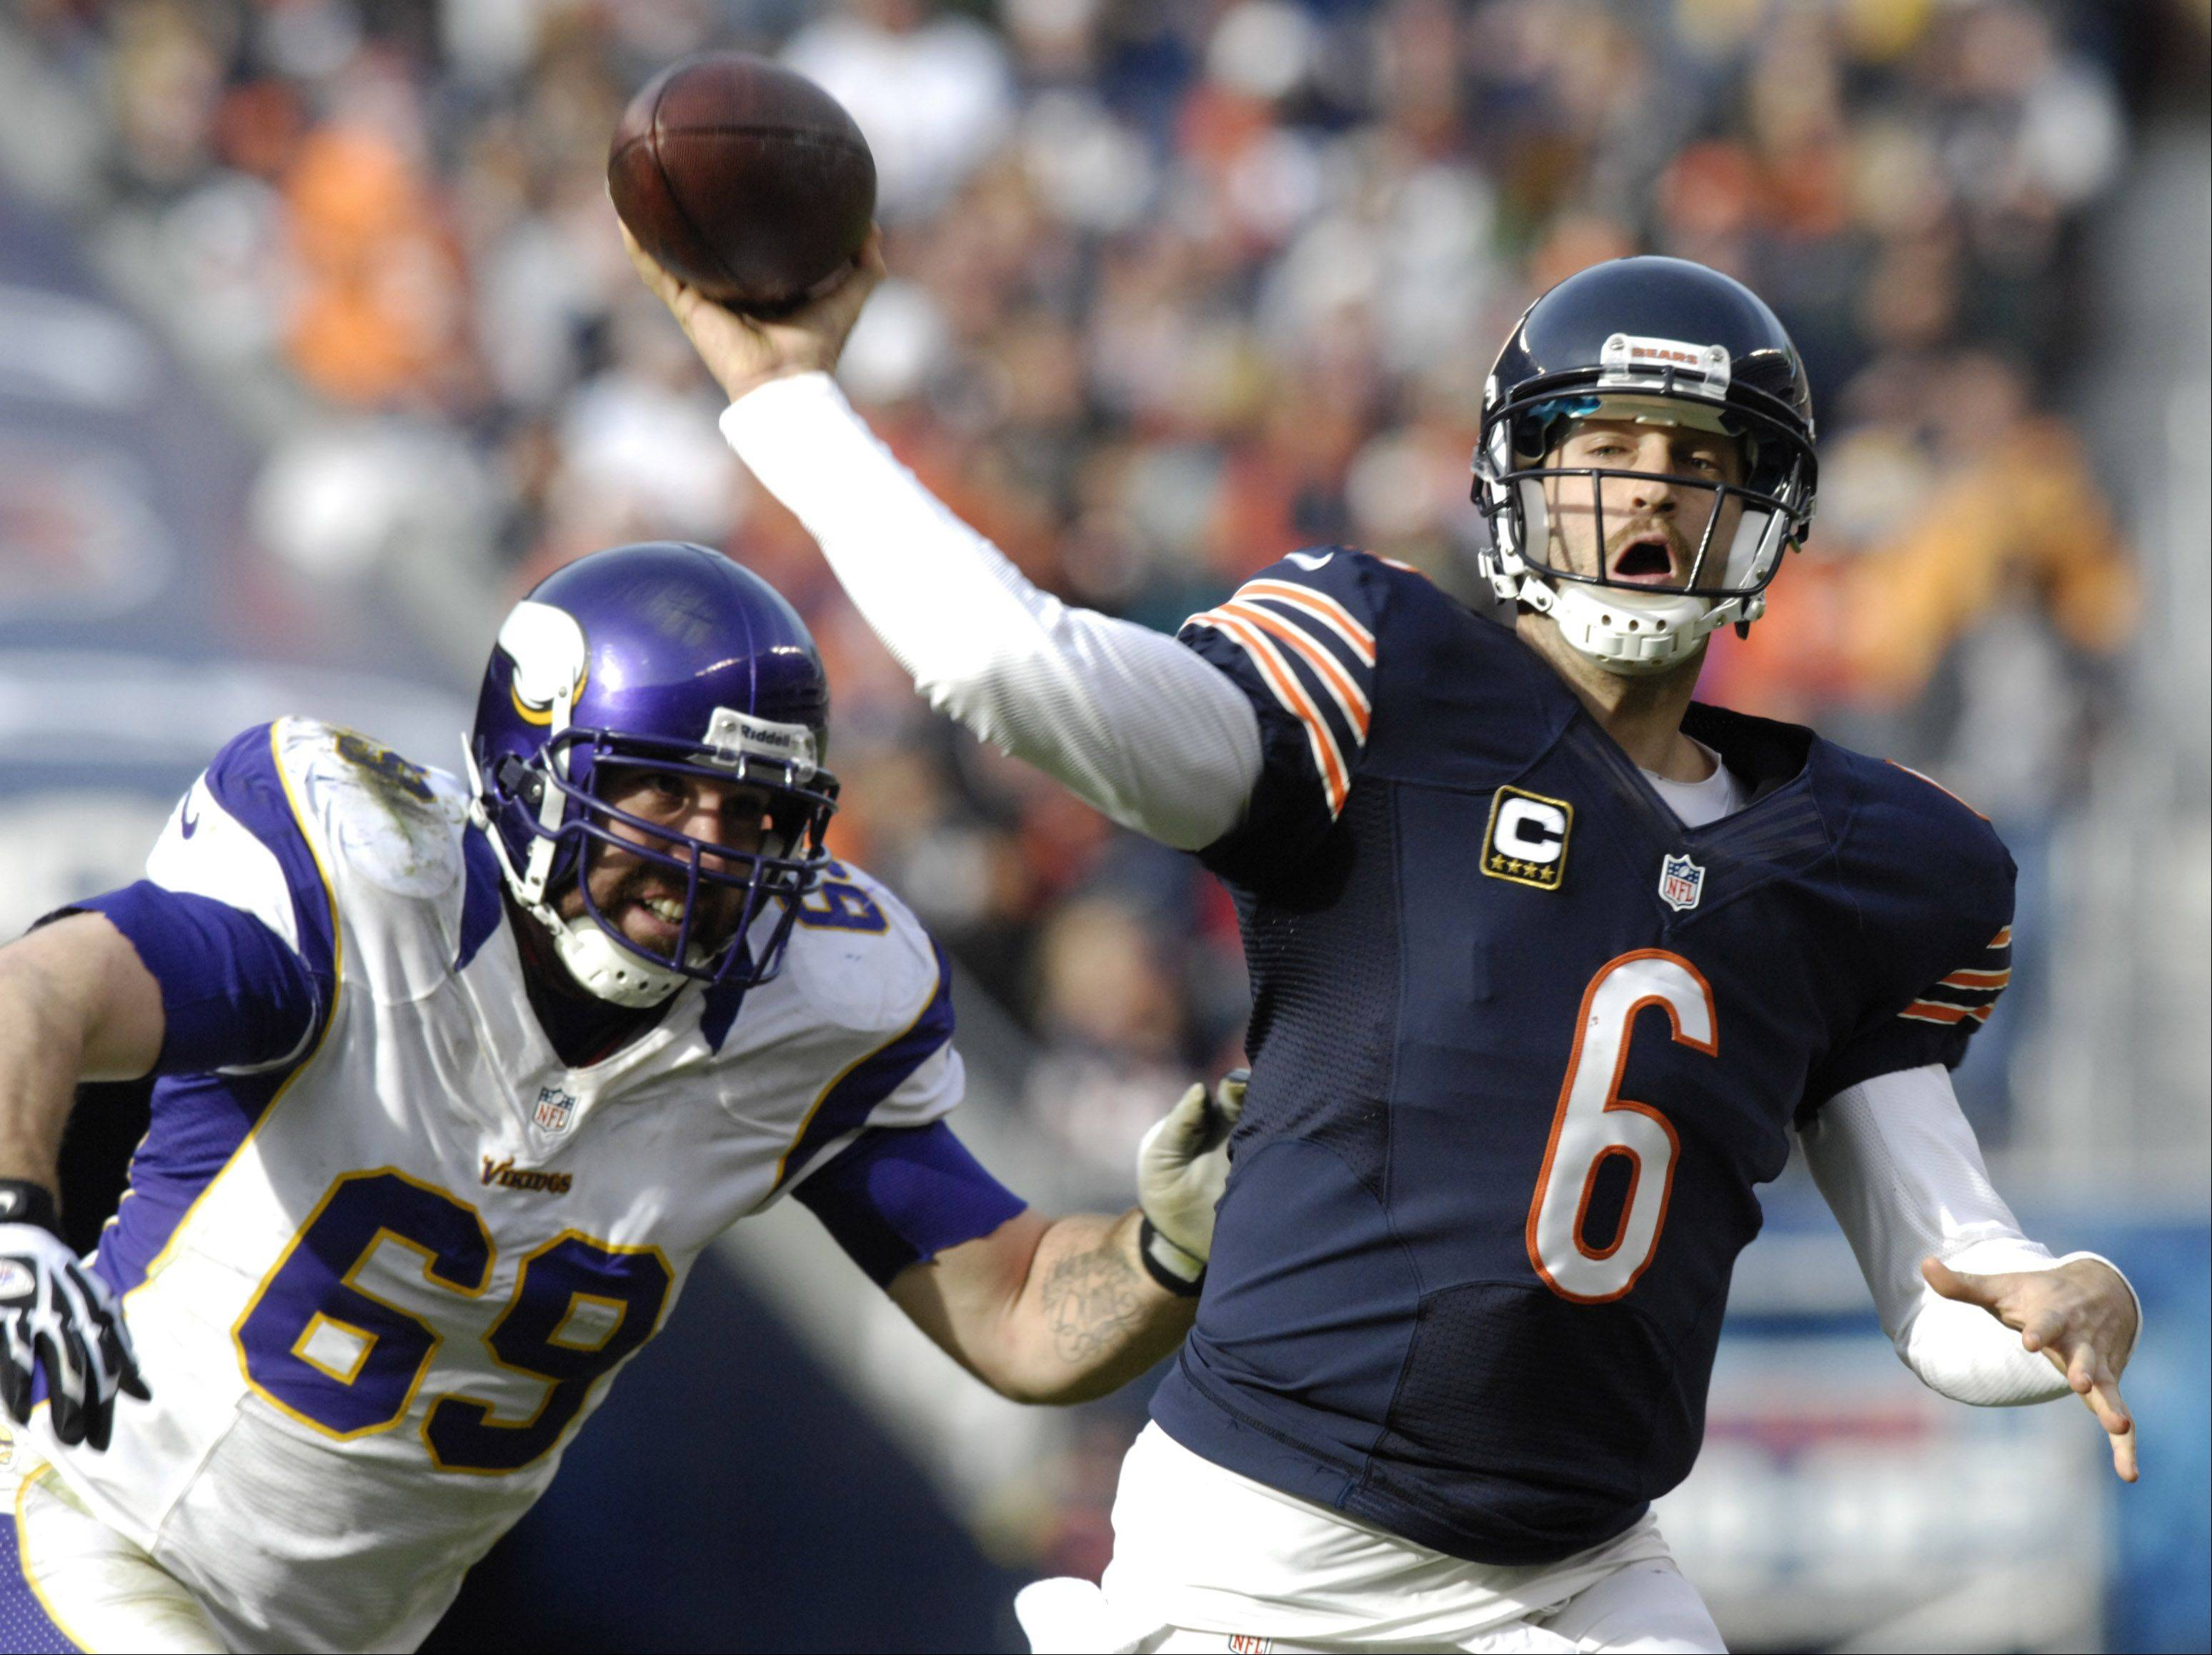 Injuries mar Bears' easy win over Vikings